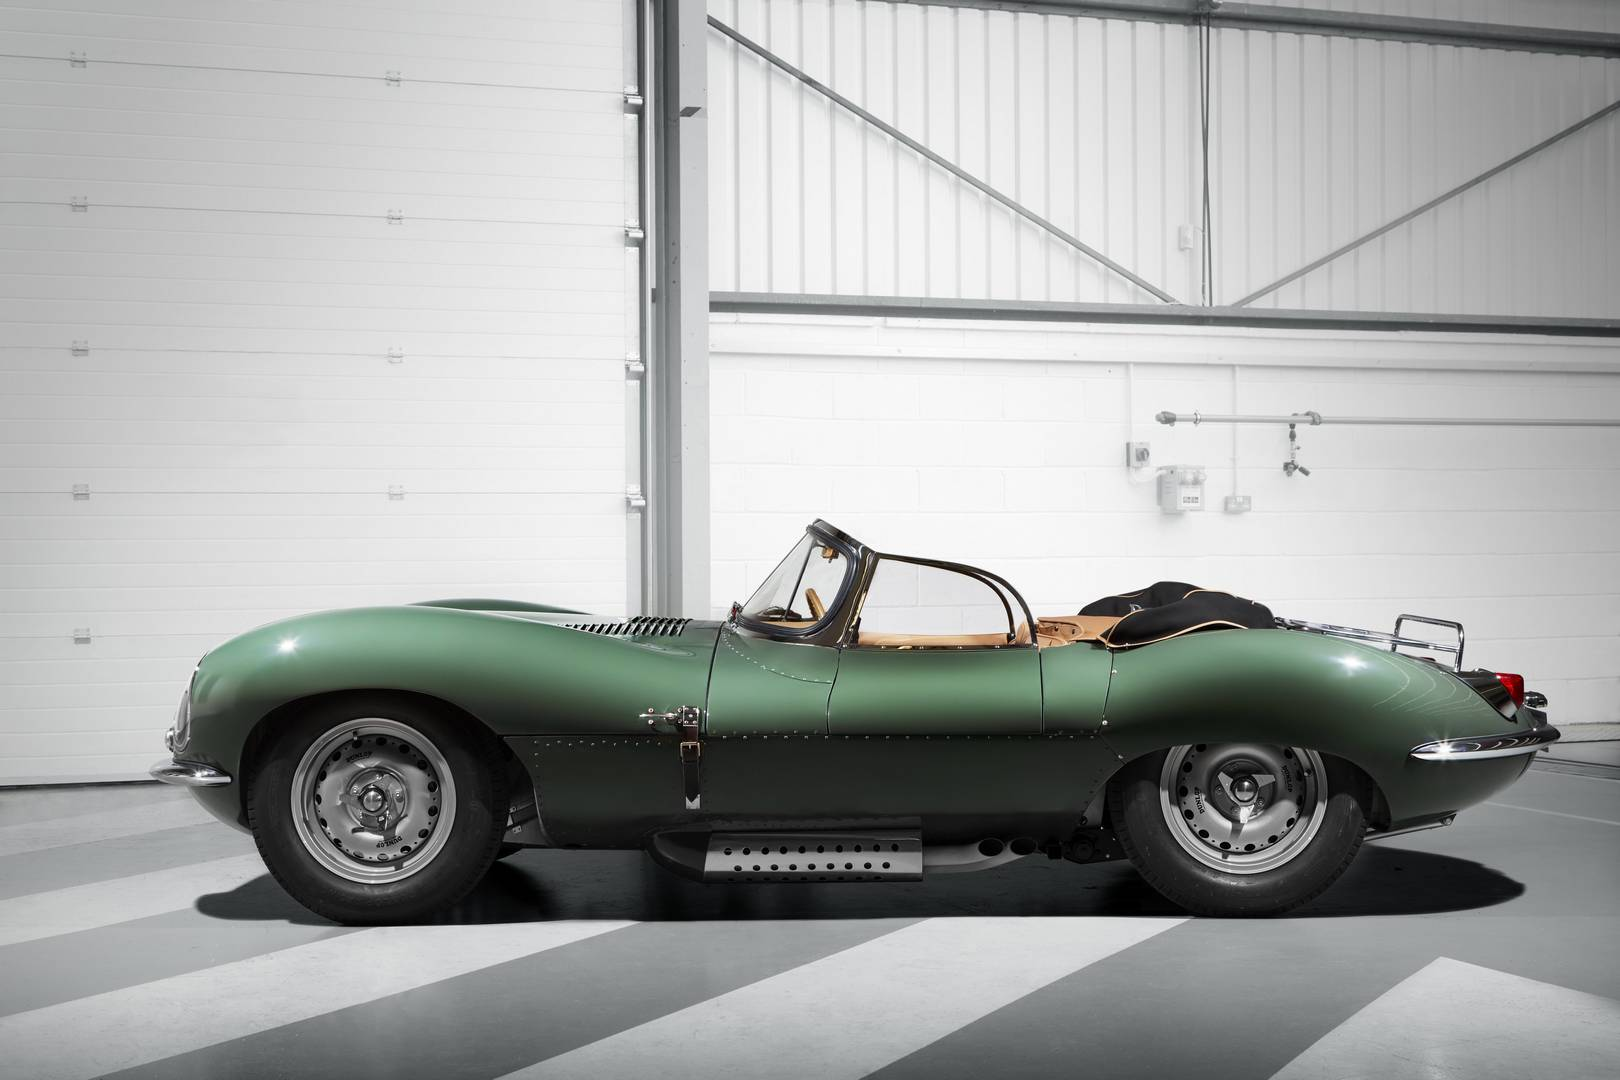 The million-dollar Jaguar XKSS